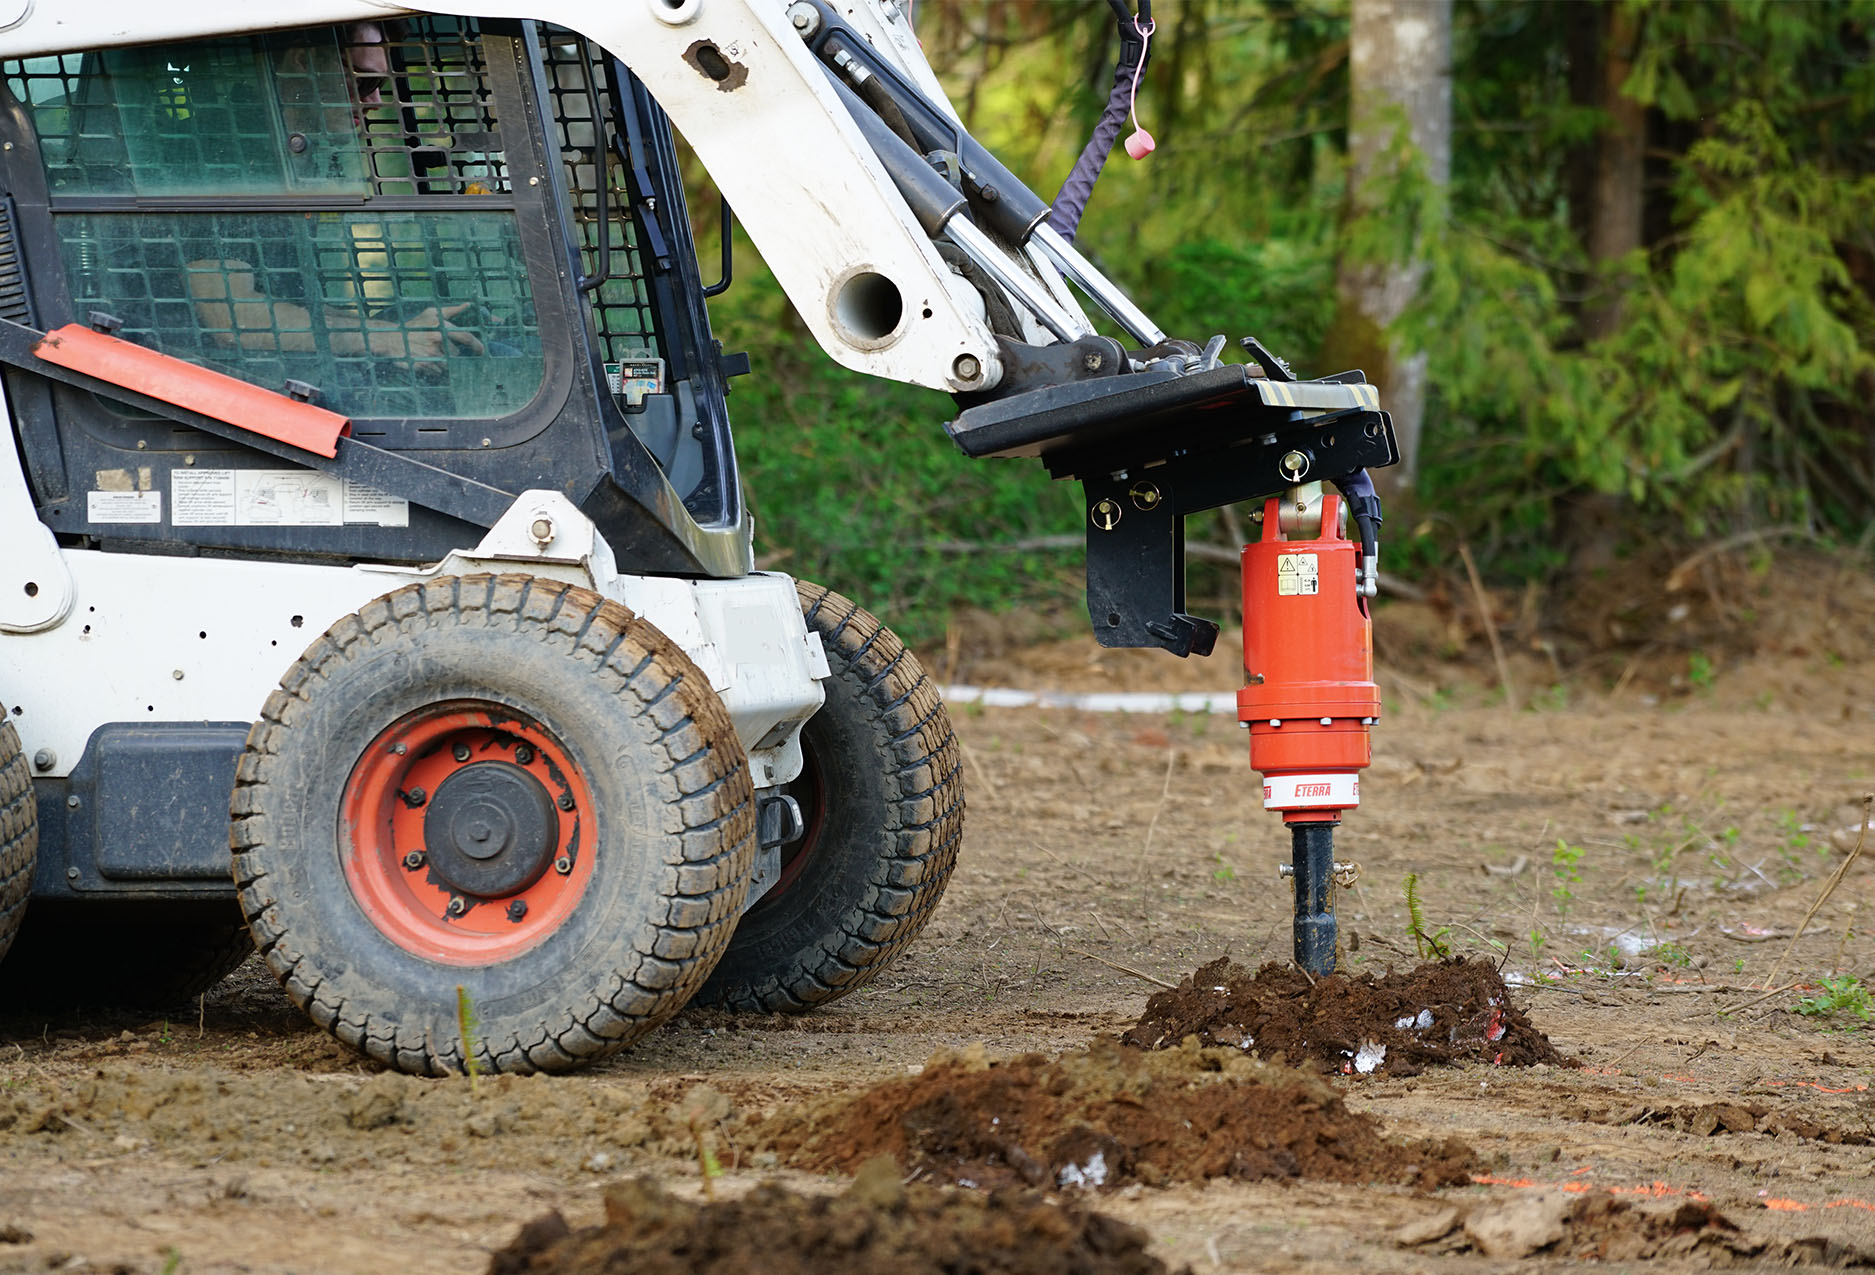 Skid Steer Auger drive Post Hole digging in soft earth conditions.